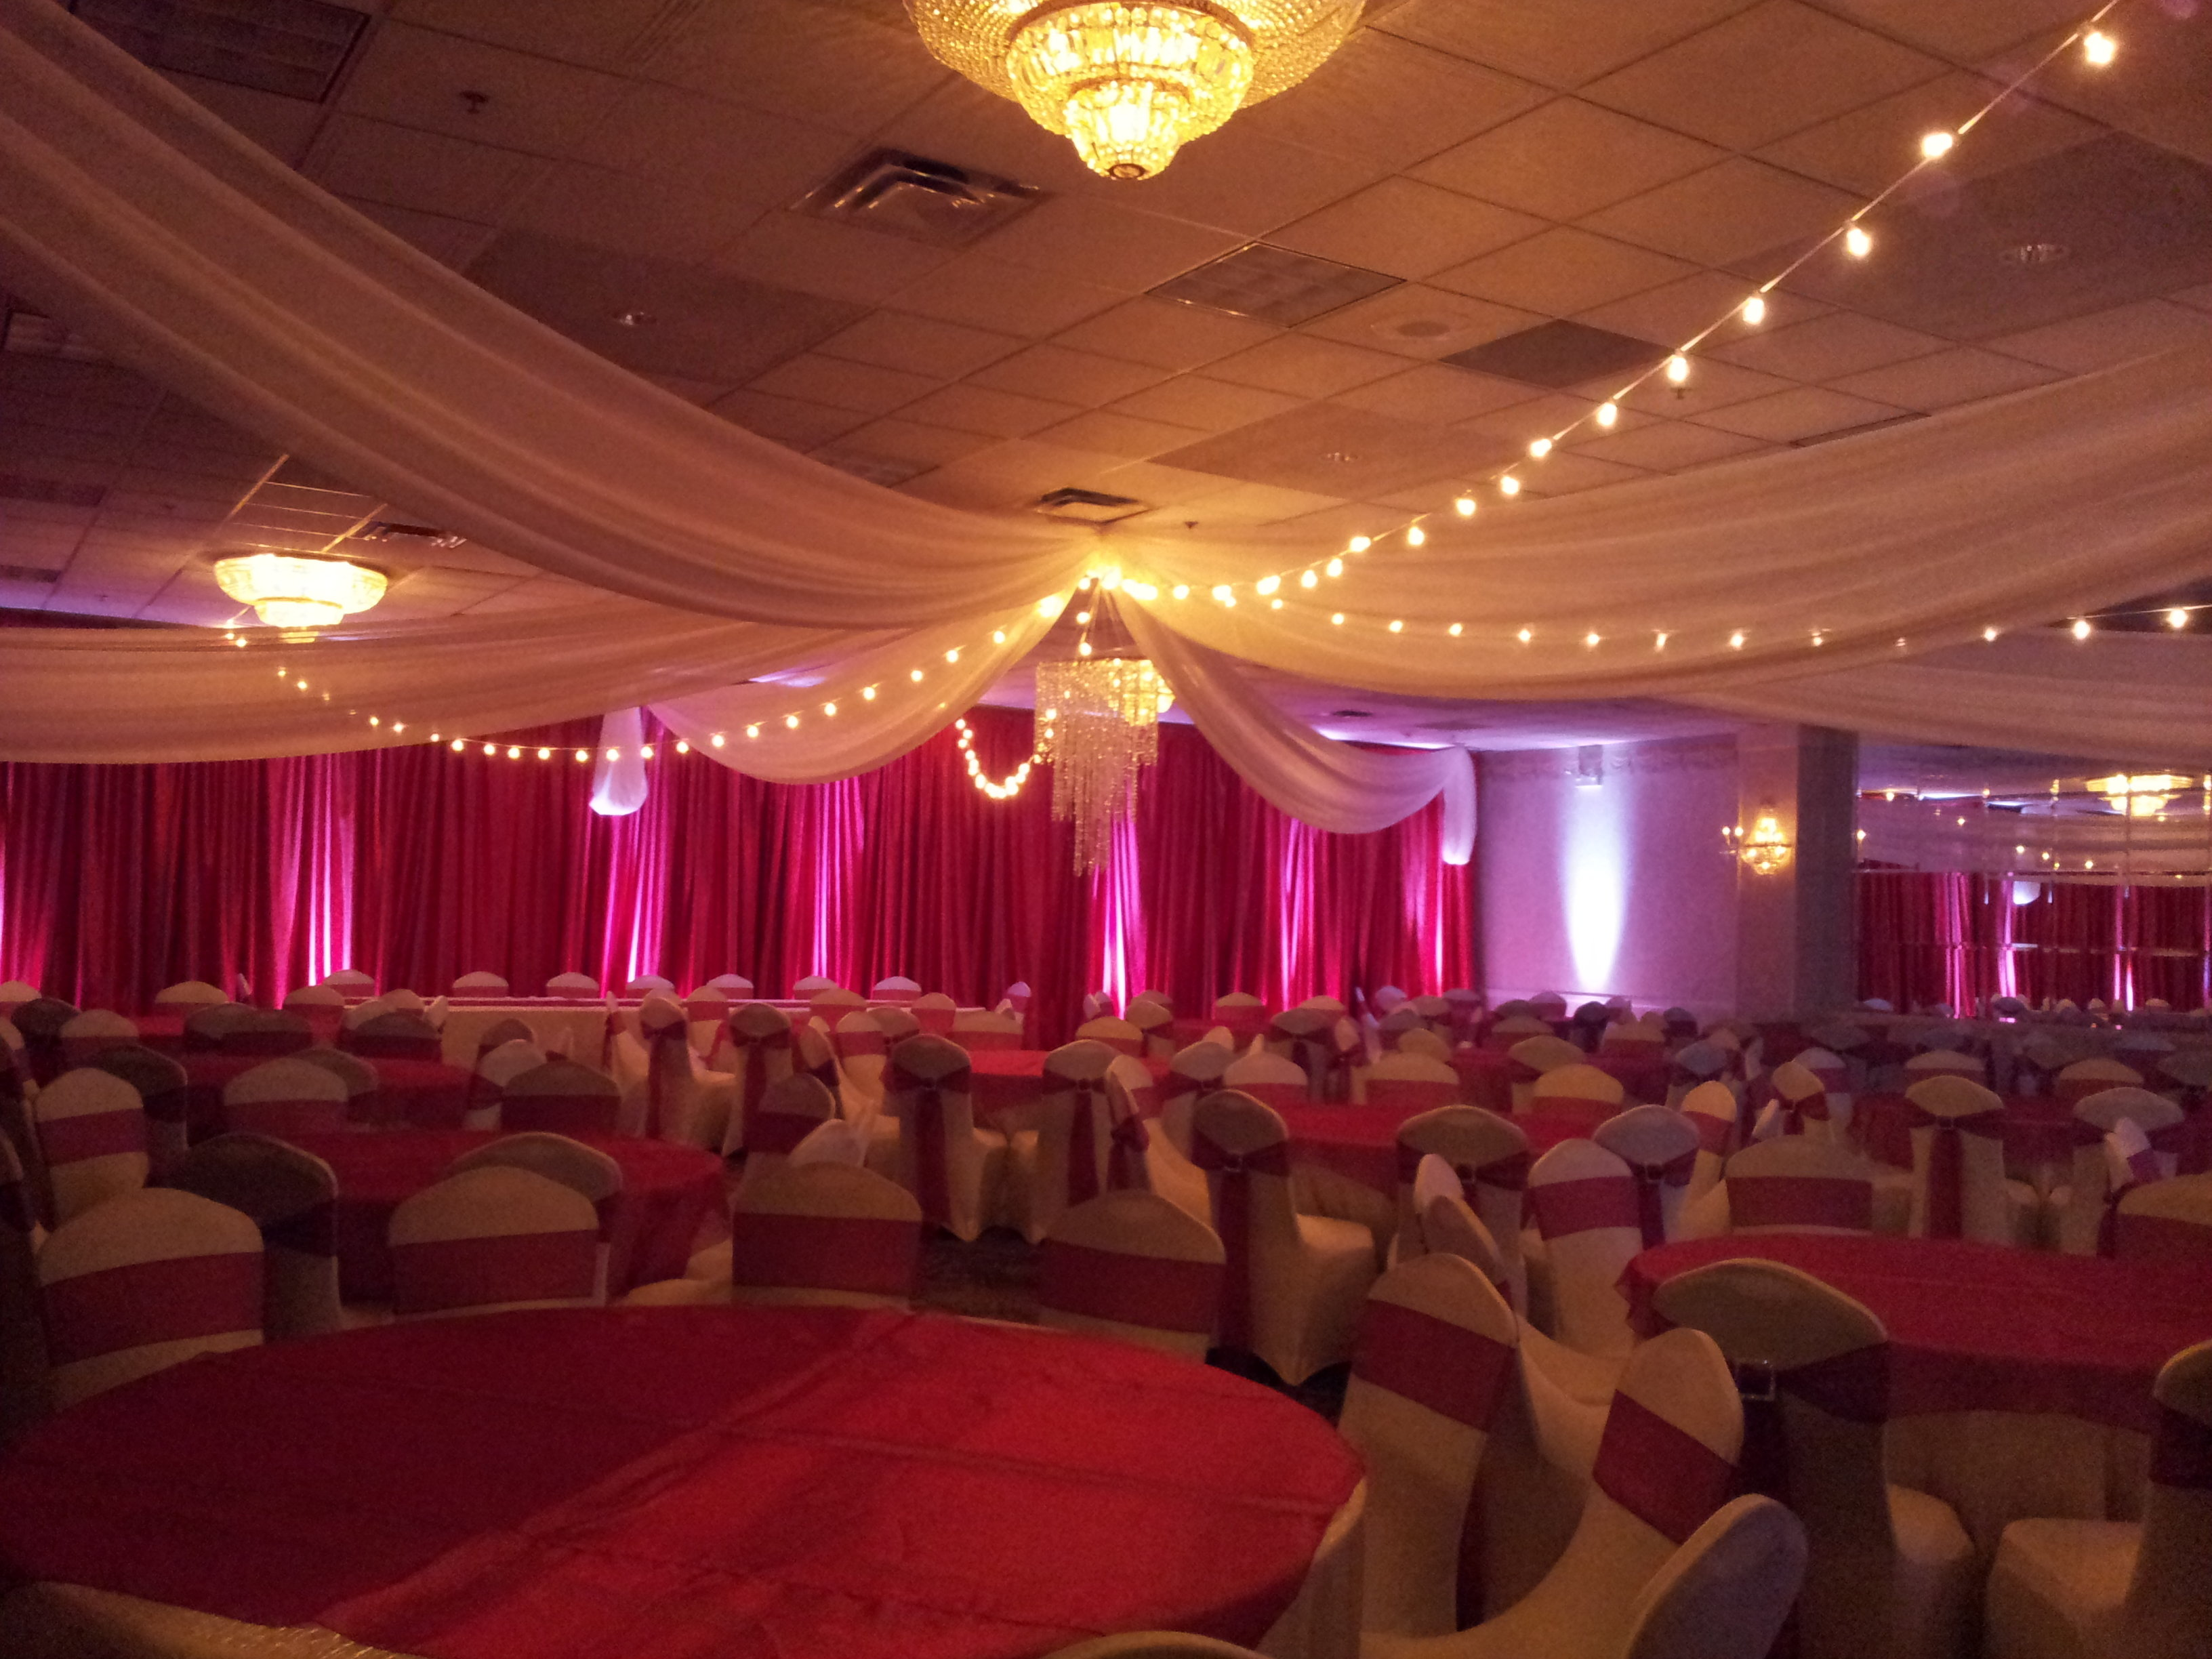 DIY Red Sateen Wall Draping - 12' Height - Per Foot Red Sateen Wall Draping